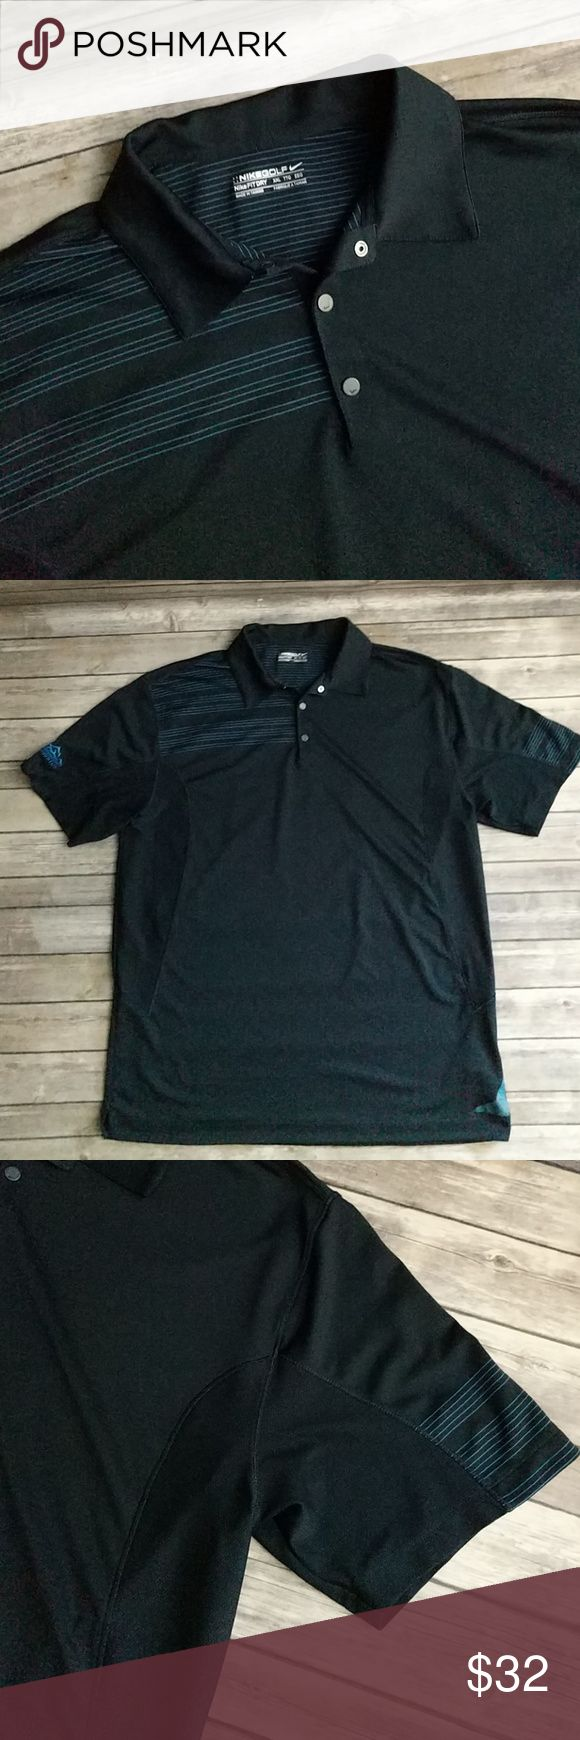 "Nike Golf Polo Shirt Dark navy blue Polo shirt in excellent used condition. Has Gold Mountain logo on right sleeve and mesh panels for staying cool. Chest 25 1/2"" laying flat. Length 33"". Nike Shirts Polos"